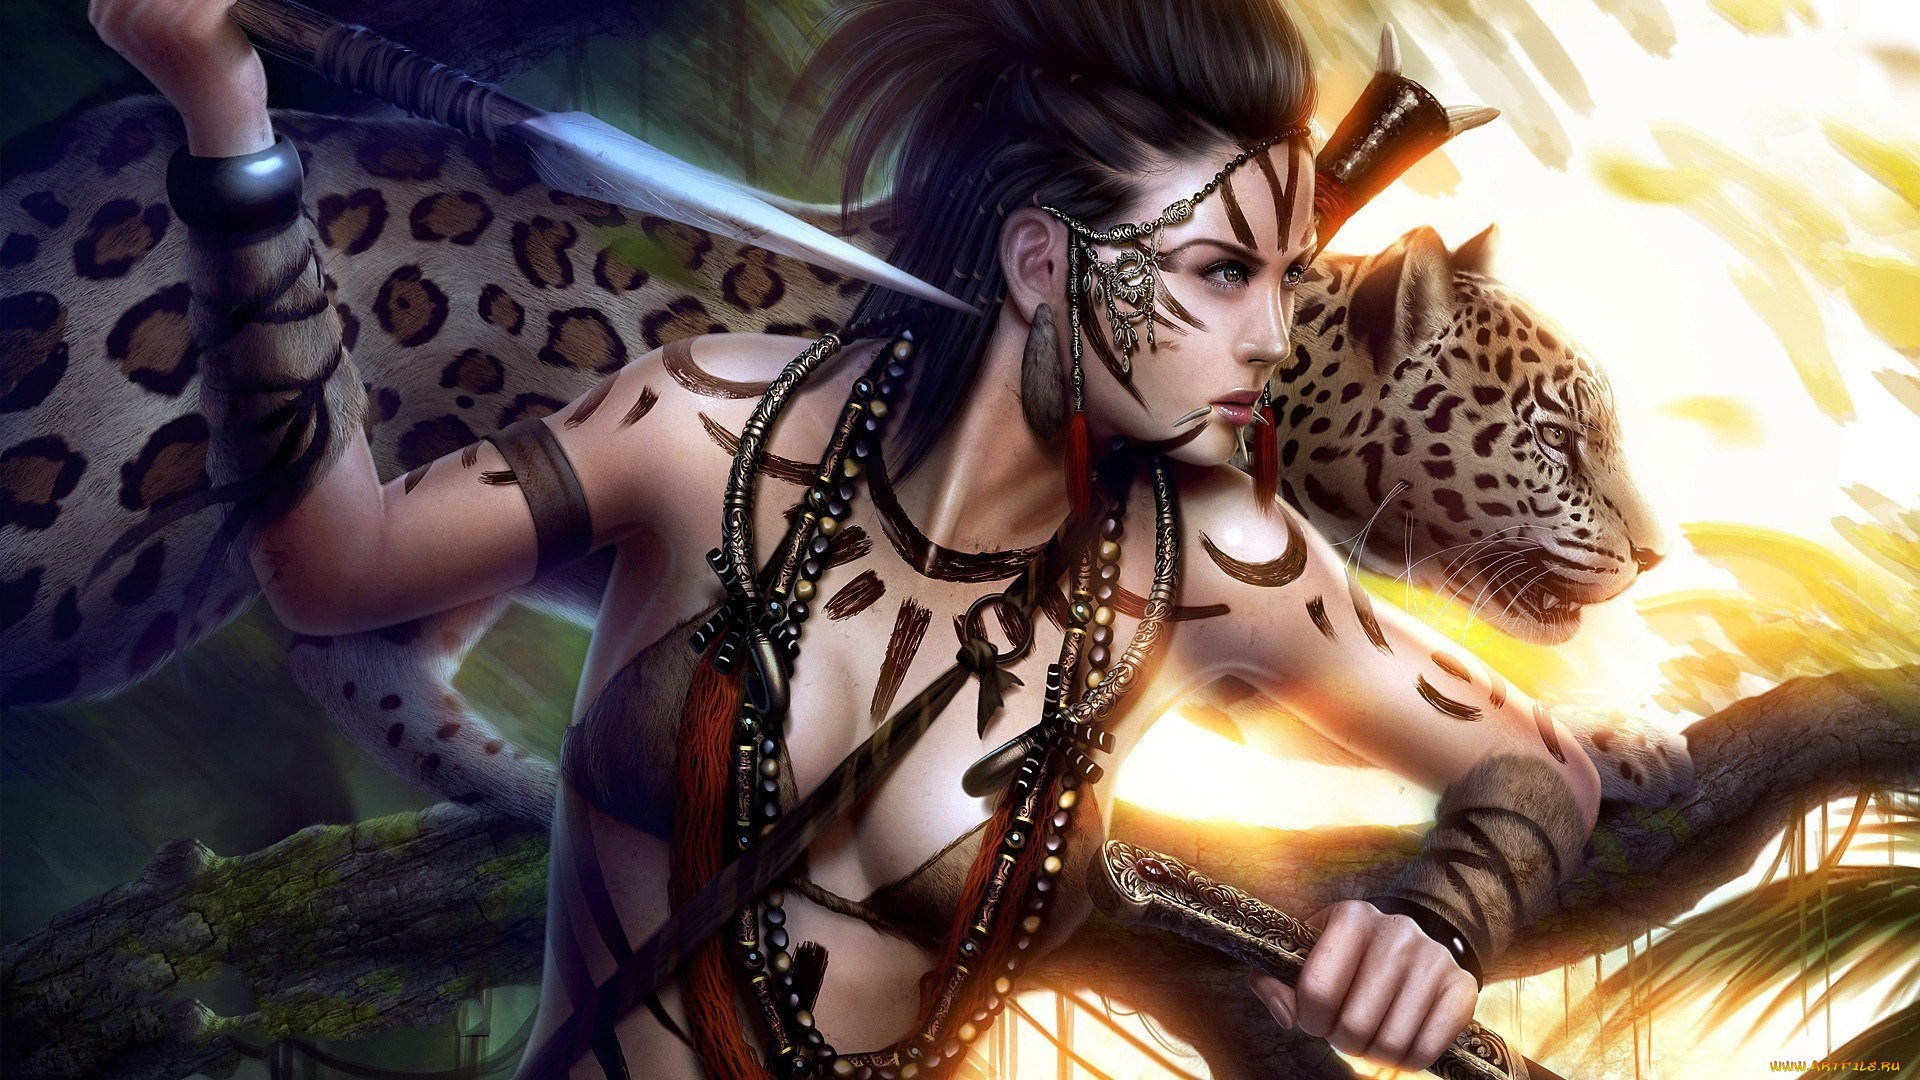 wall papers, female | download this wallpaper use for facebook ...